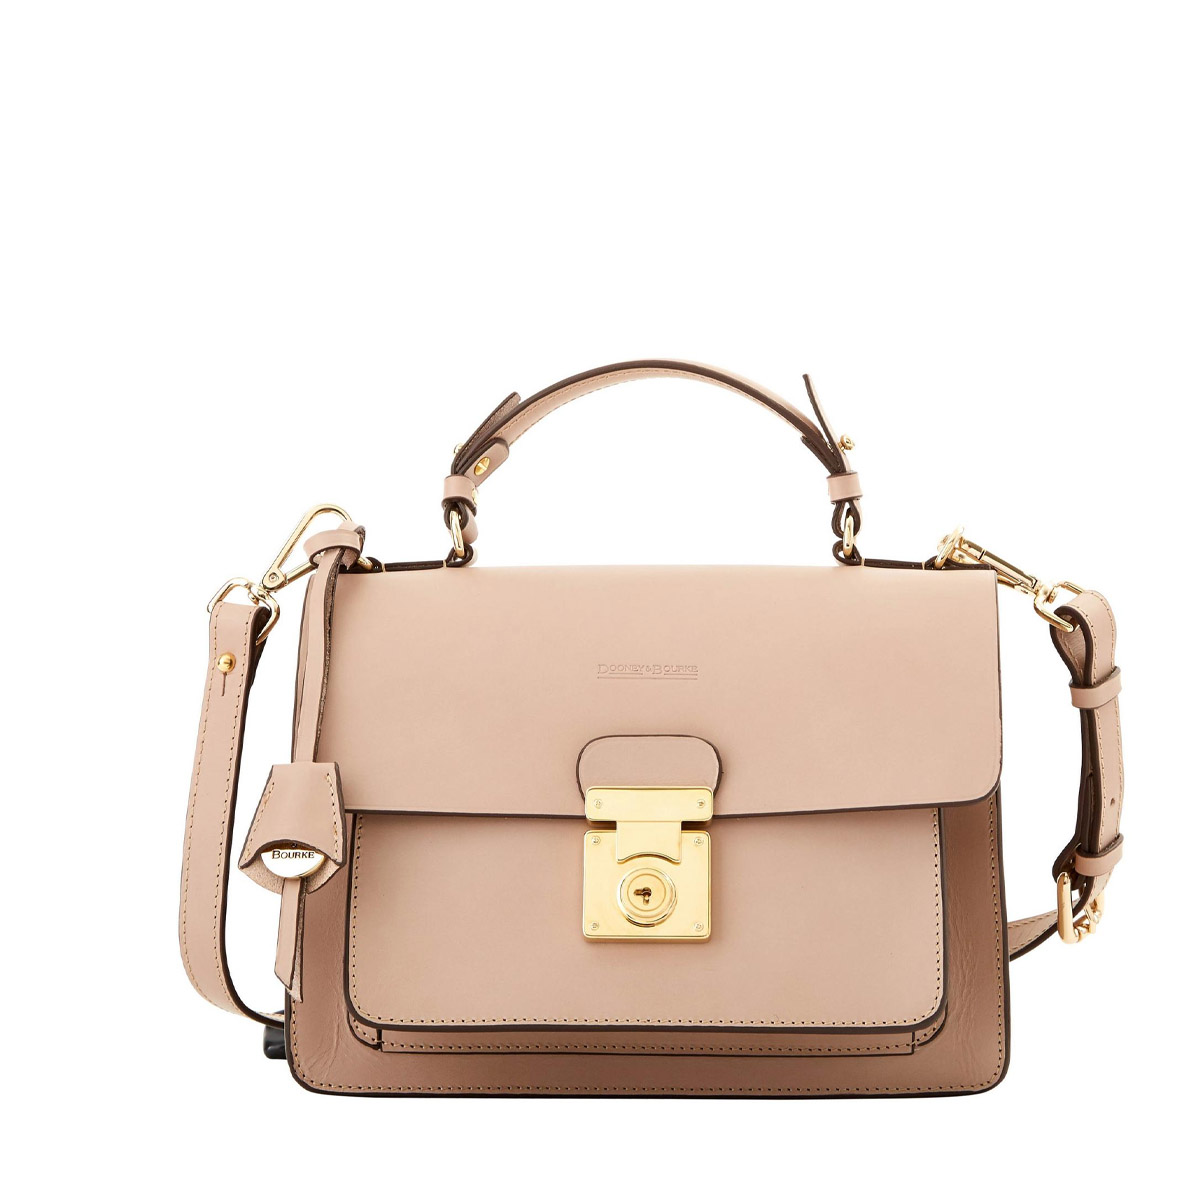 Dooney & Bourke Adele Handbag - Designed in America and crafted in Italy, the Adele purse is generously provided by D&B. Featuring adjustable and detachable straps and a magnetic closure. A convenient sized bag perfect for anyone on the go.Retail Value: $595.00